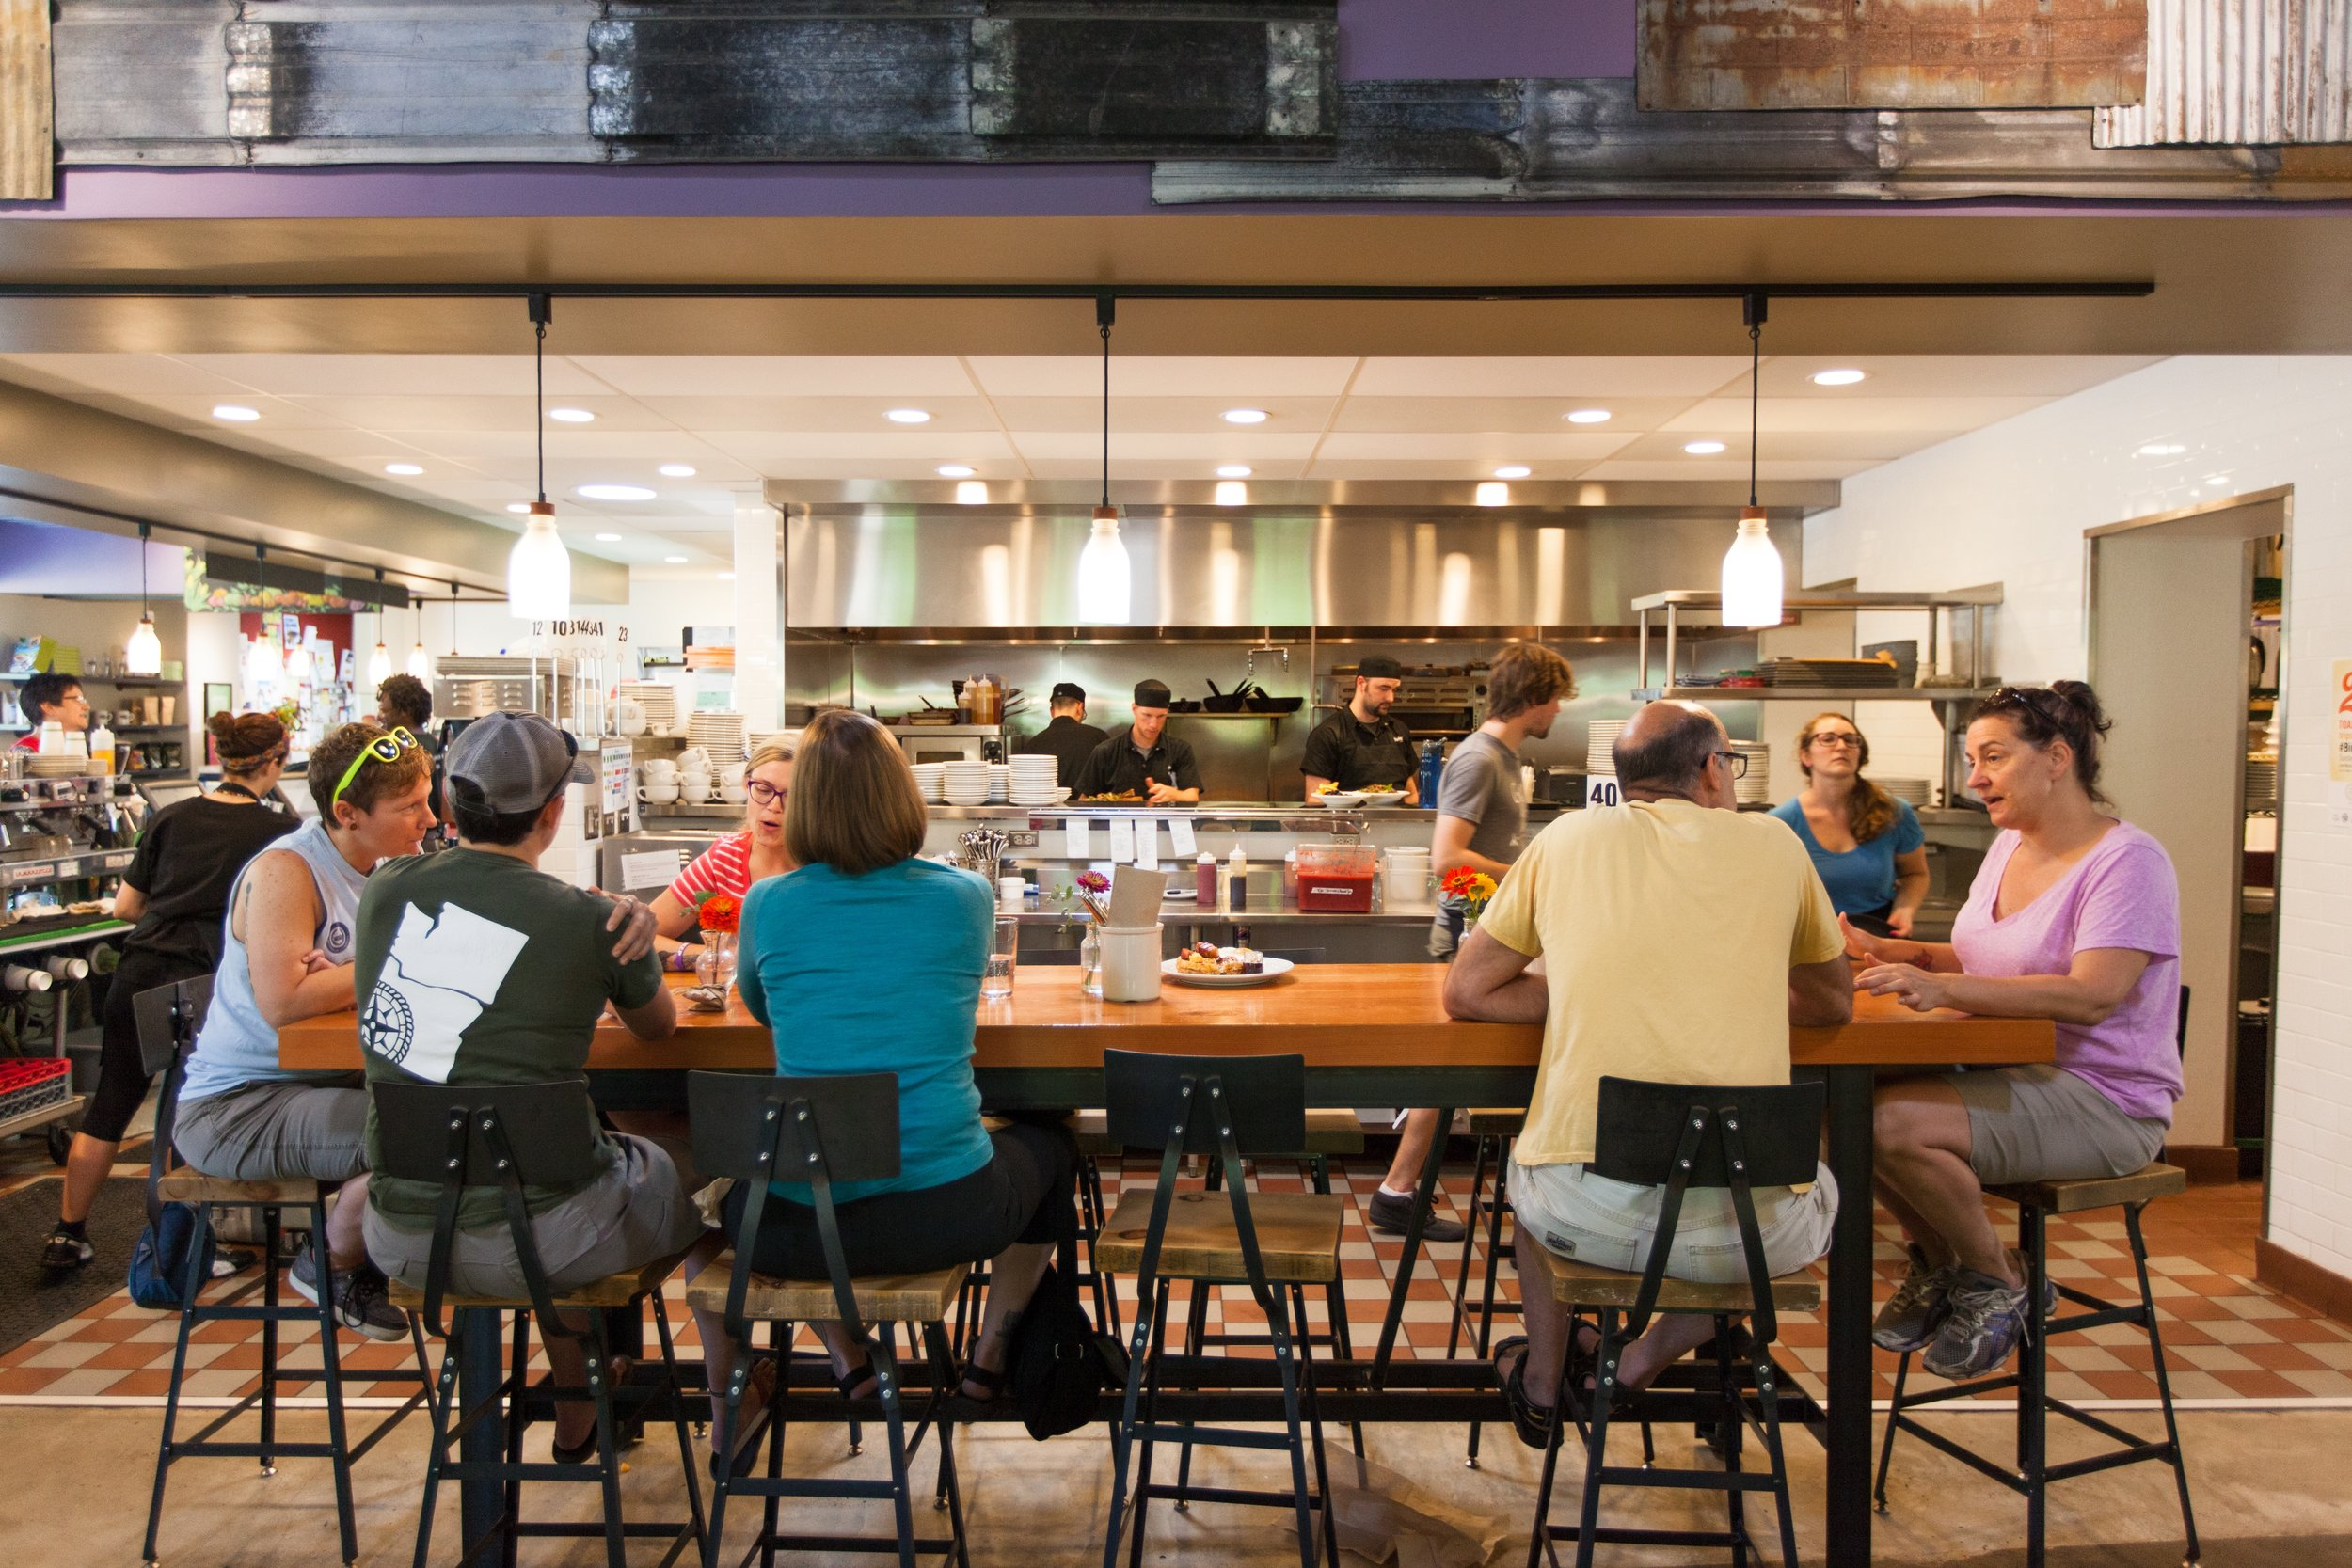 EAT - we design spaces for the community to gather over good eats